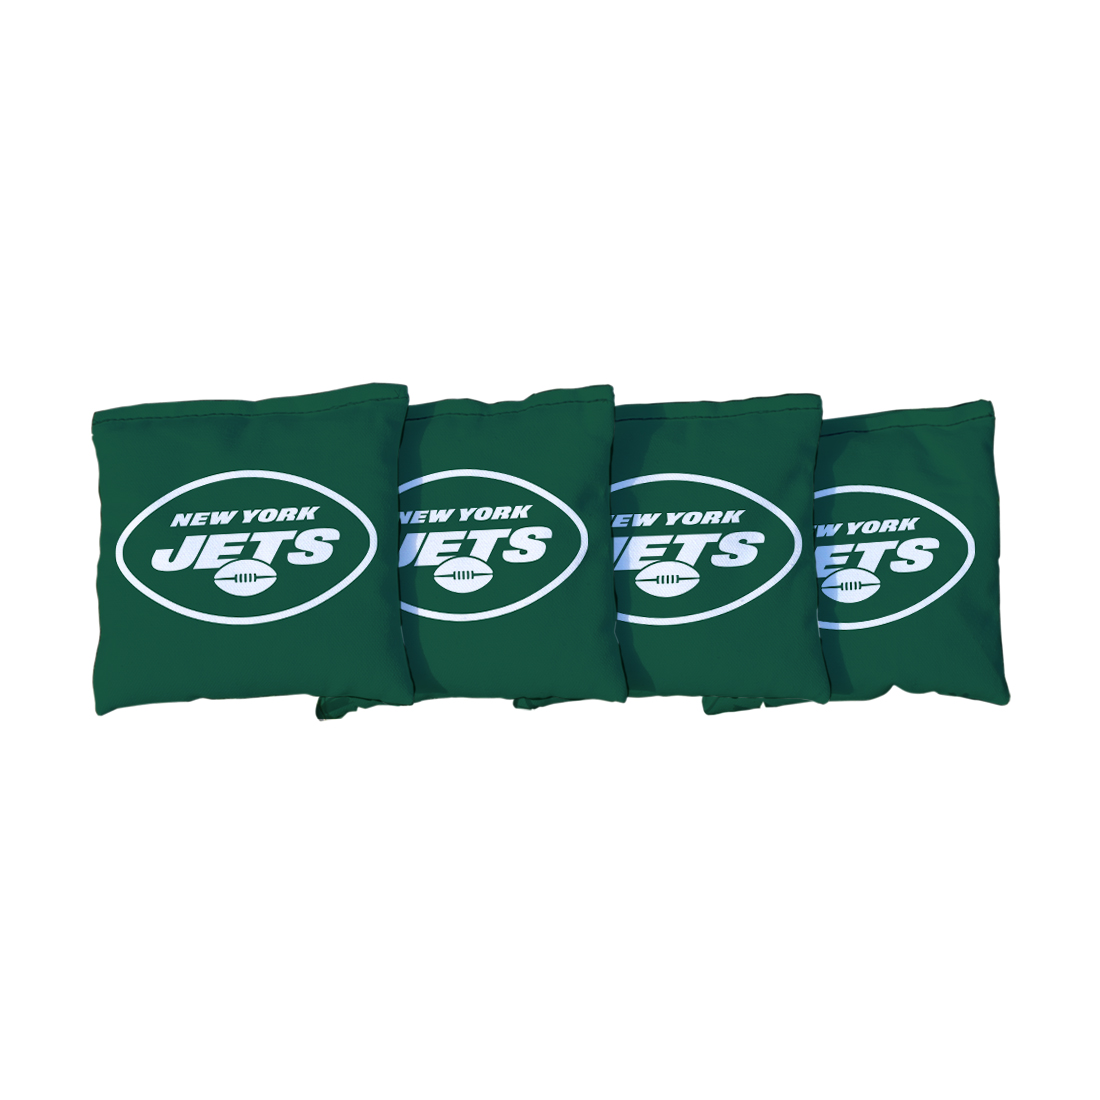 4 New York Jets NFL Green Cornhole Bags